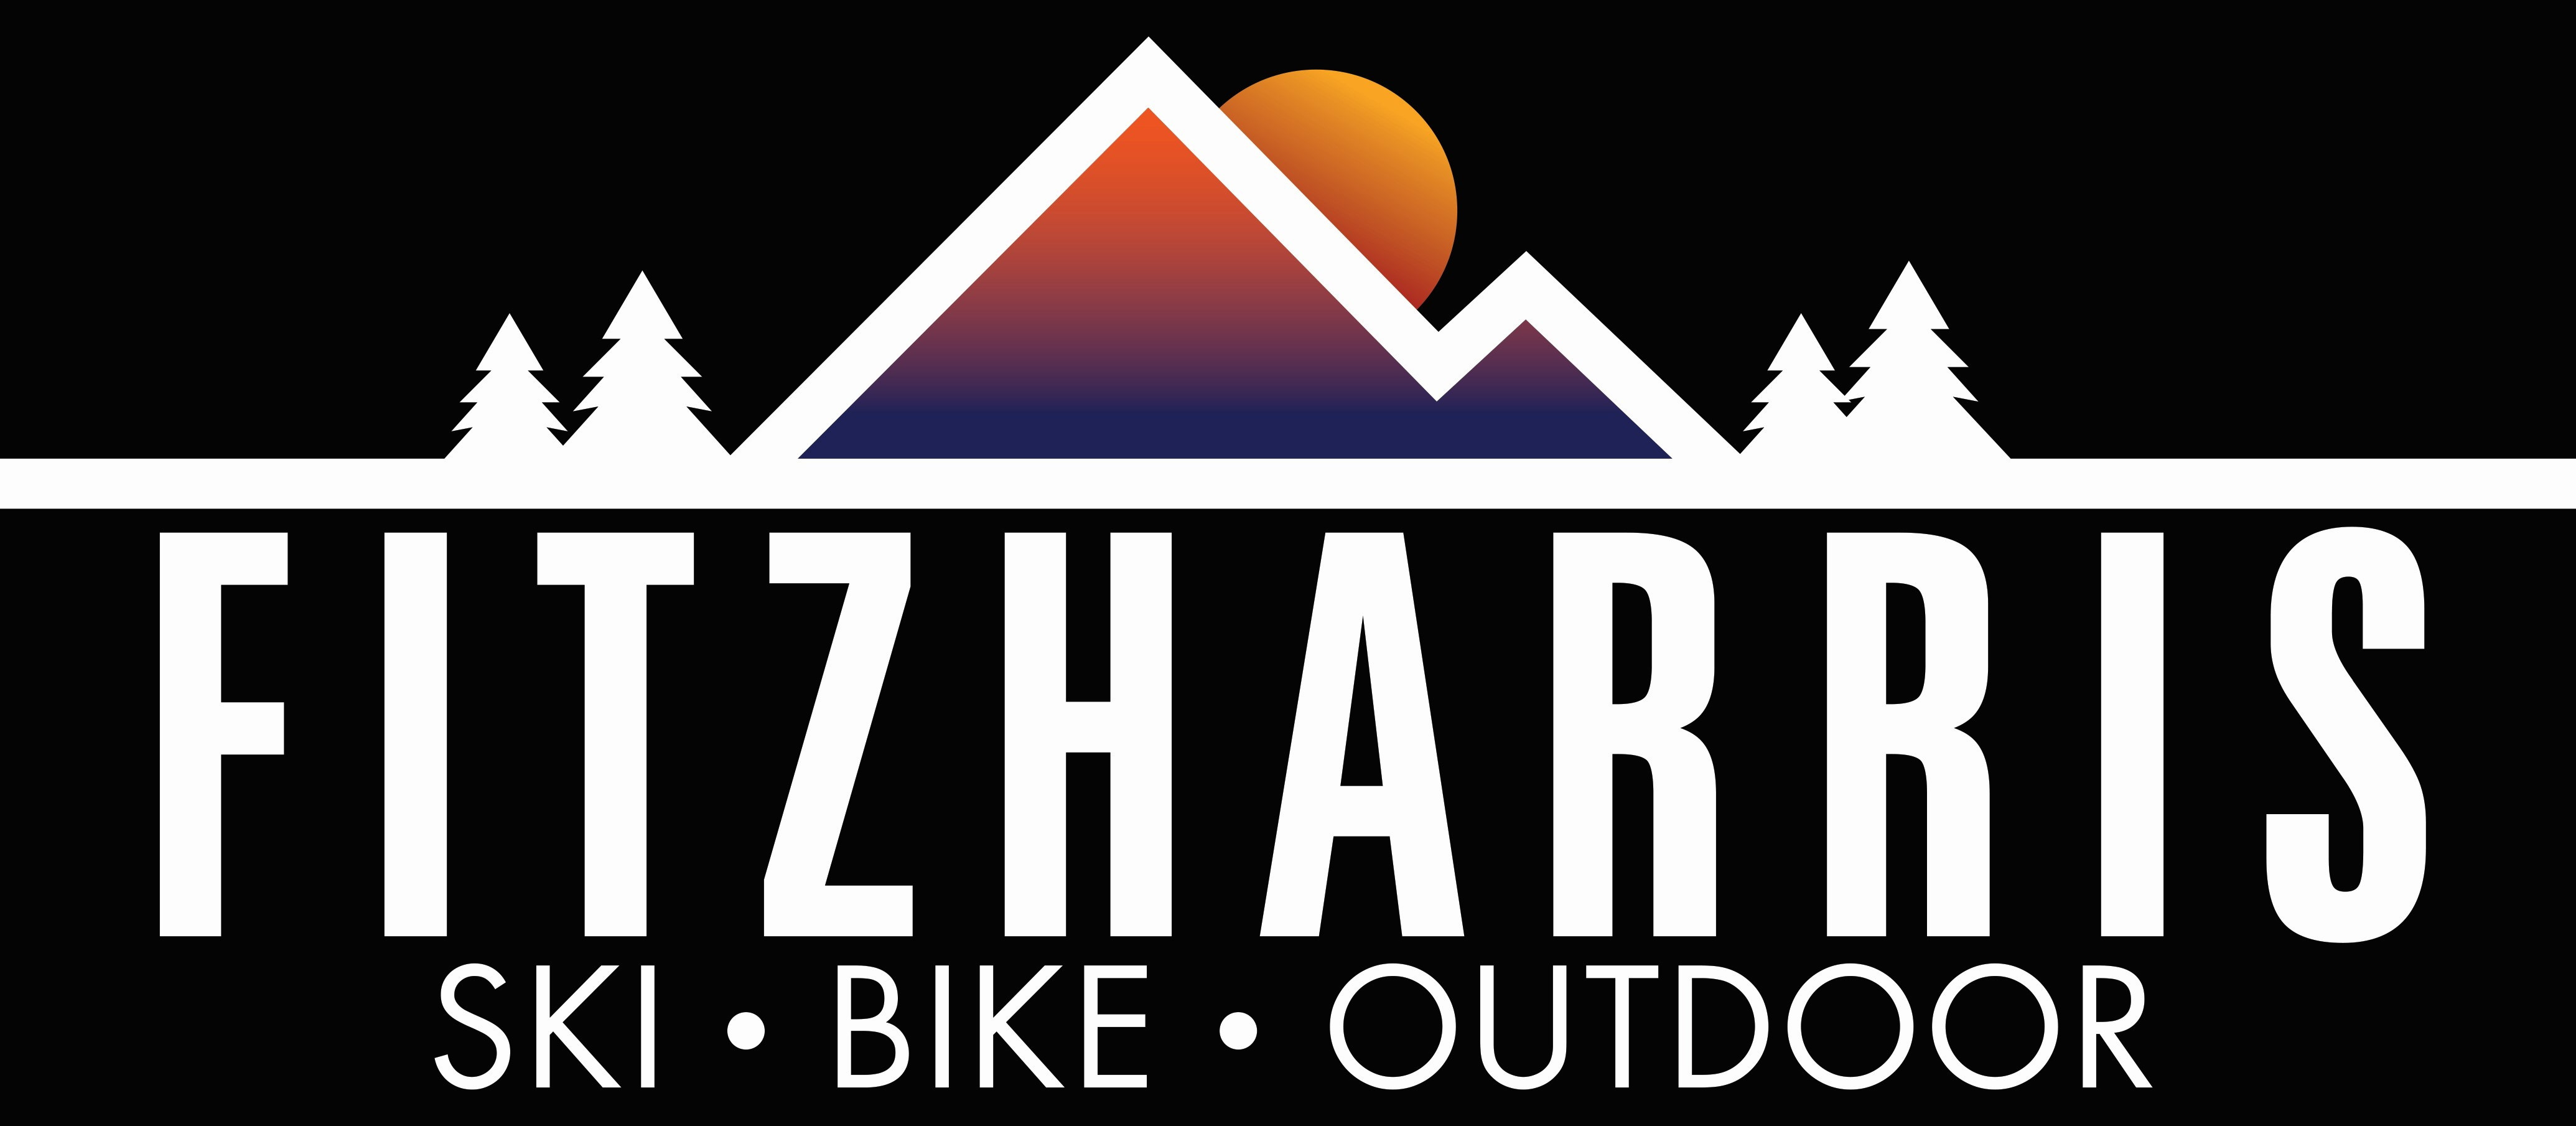 Fitzharris Ski Bike and Outdoor